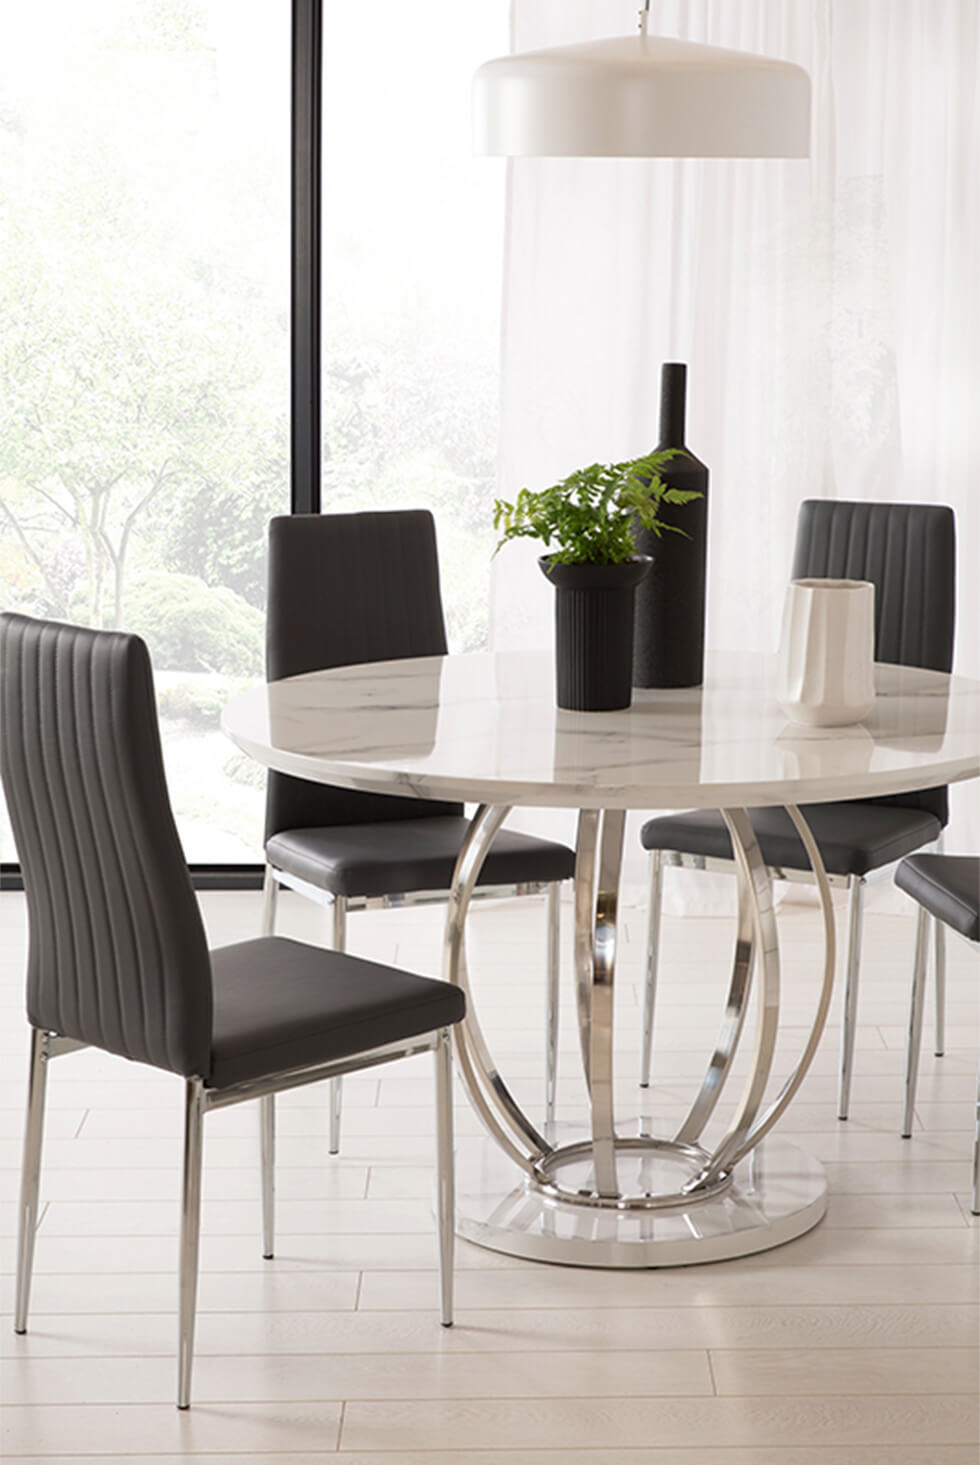 Round white marble dining table and black leather dining chairs in a modern dining room